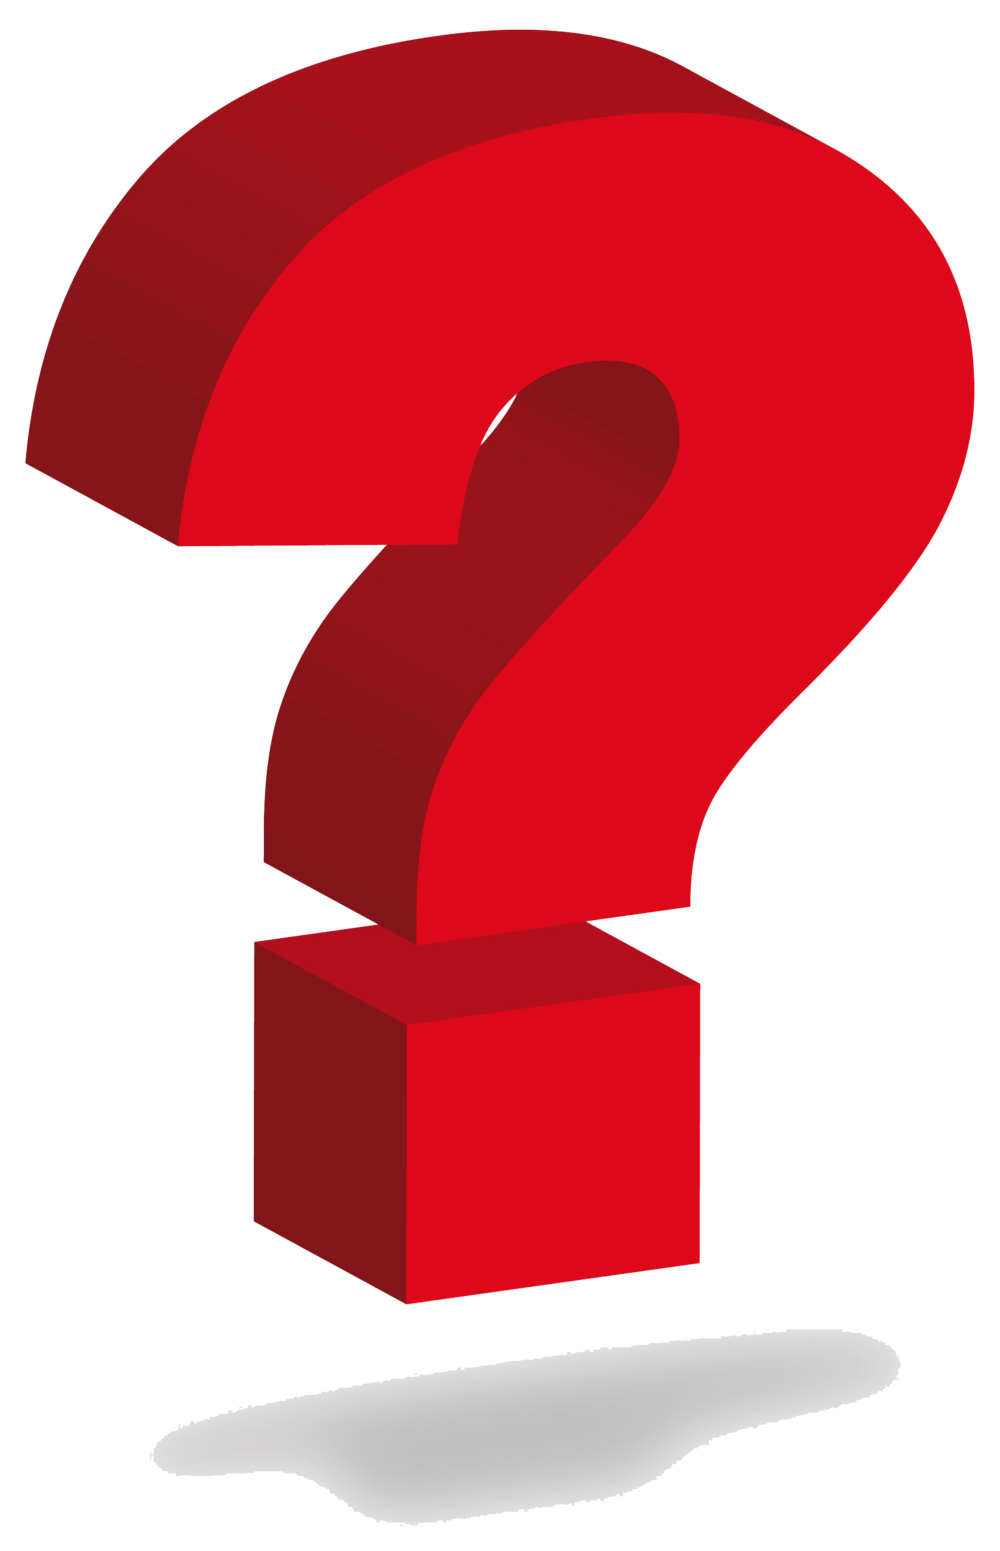 Clip art question marks clipart